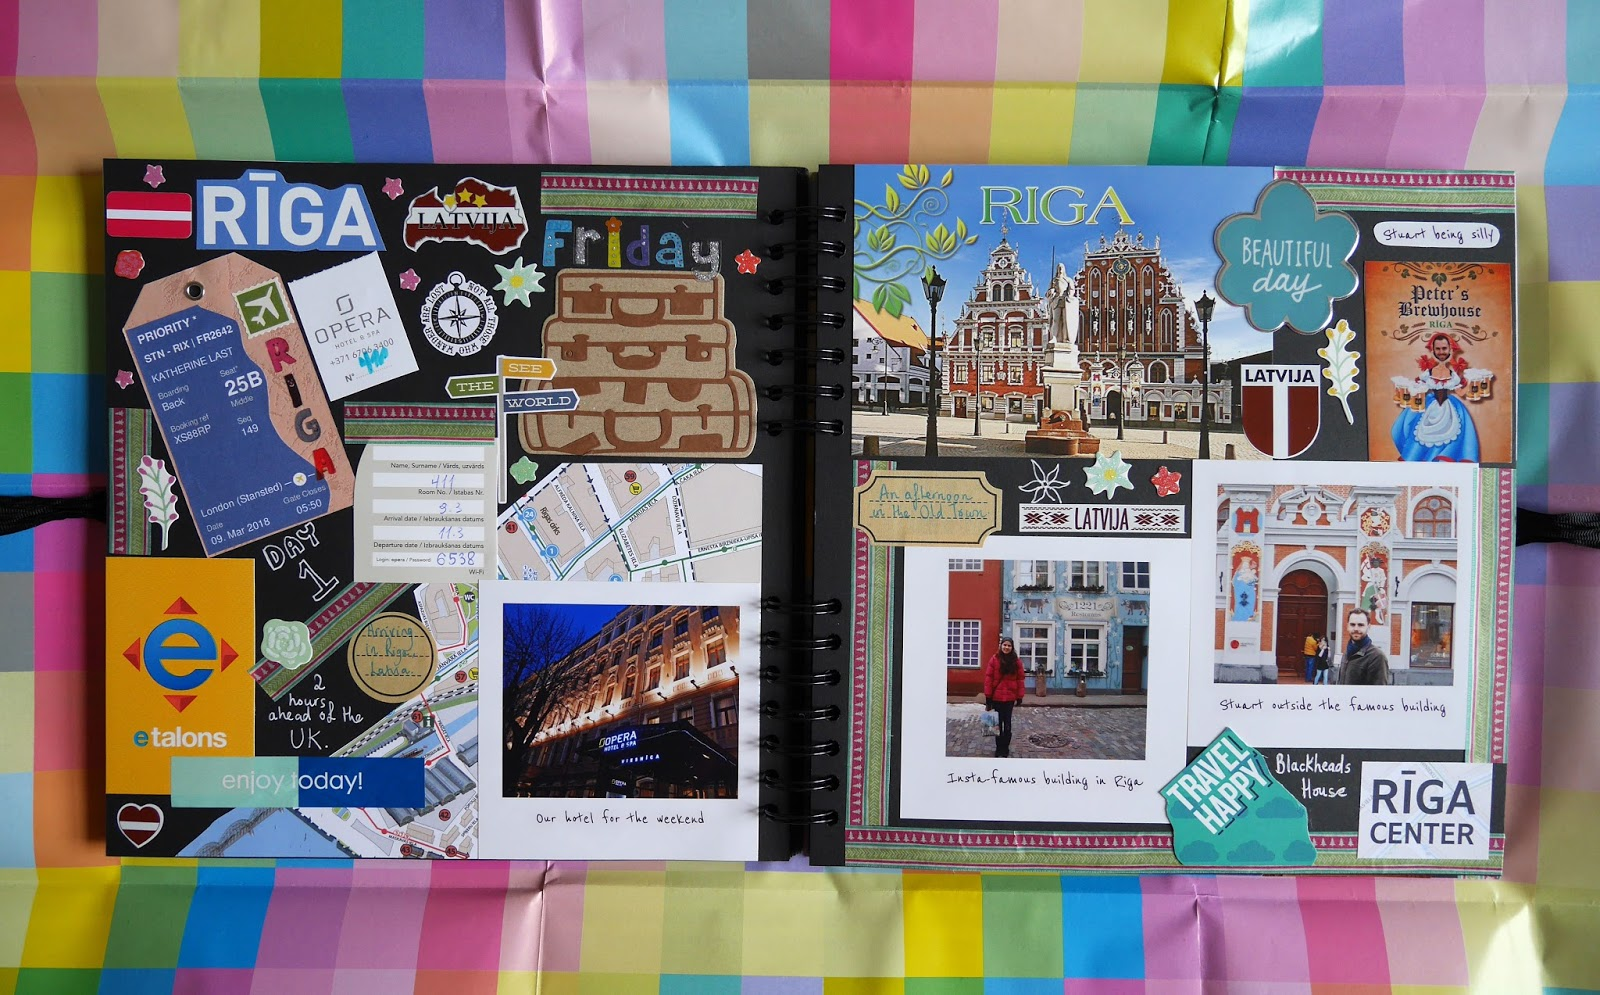 Pages 1 and 2 of the Riga section of my travel scrapbook - arriving in Latvia and exploring Riga's Old Town